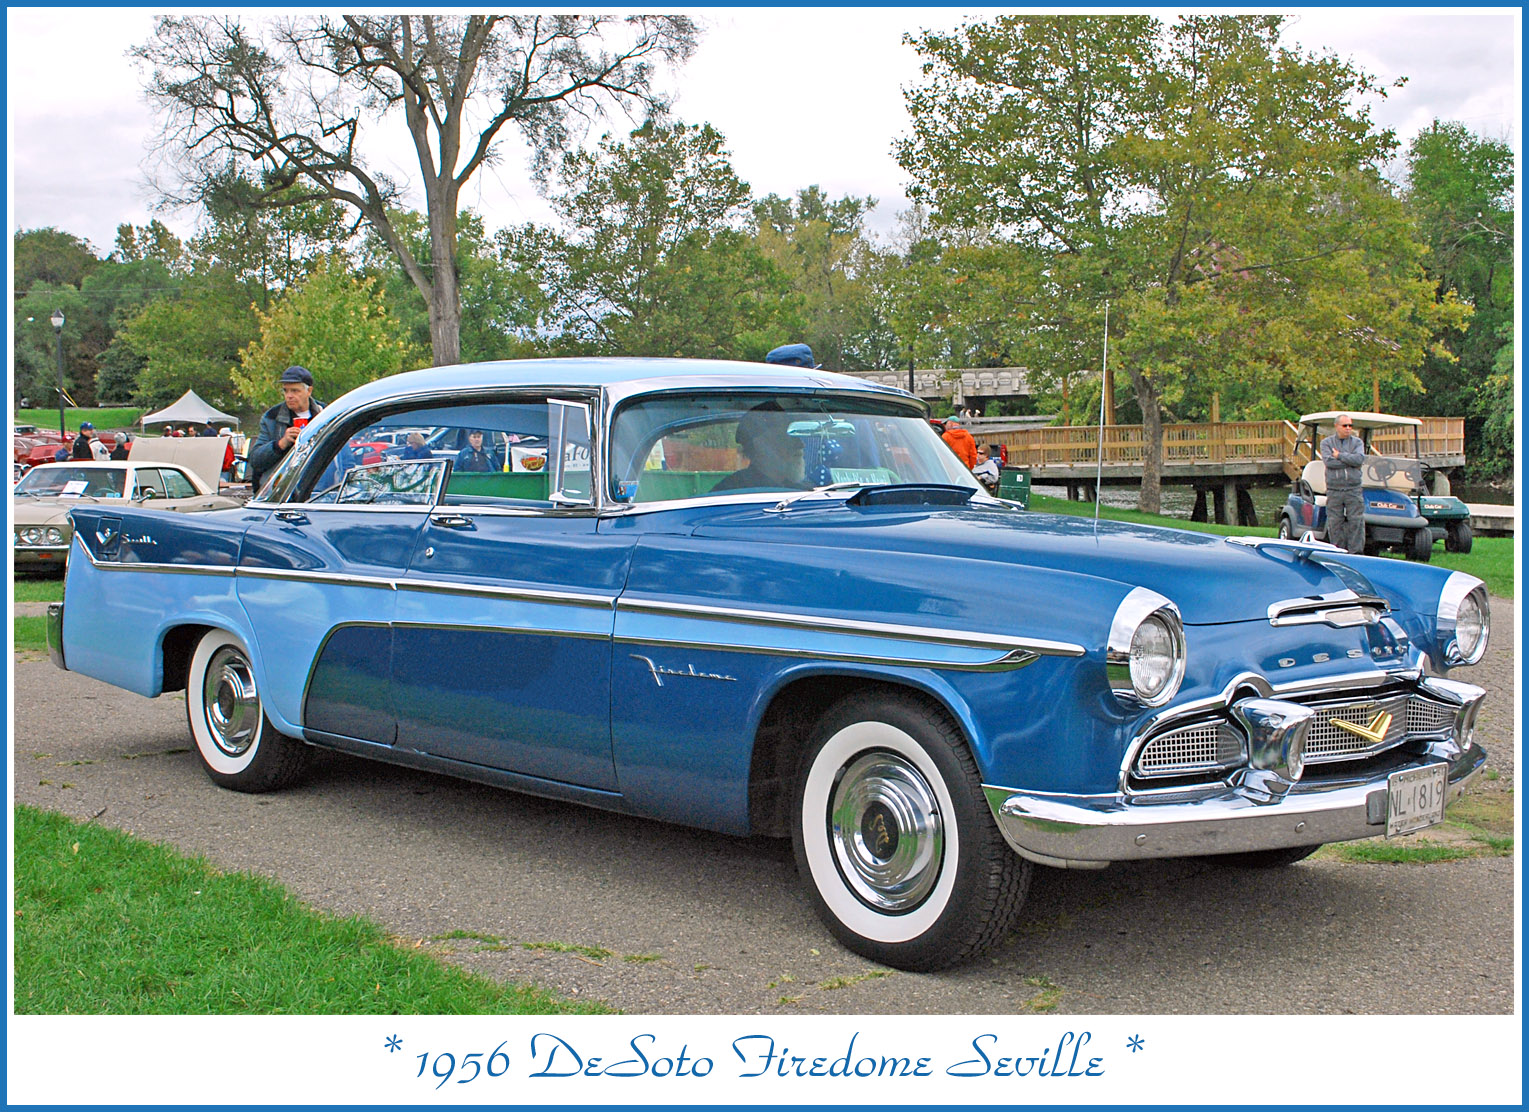 1956 DeSoto Firedome | Flickr - Photo Sharing!